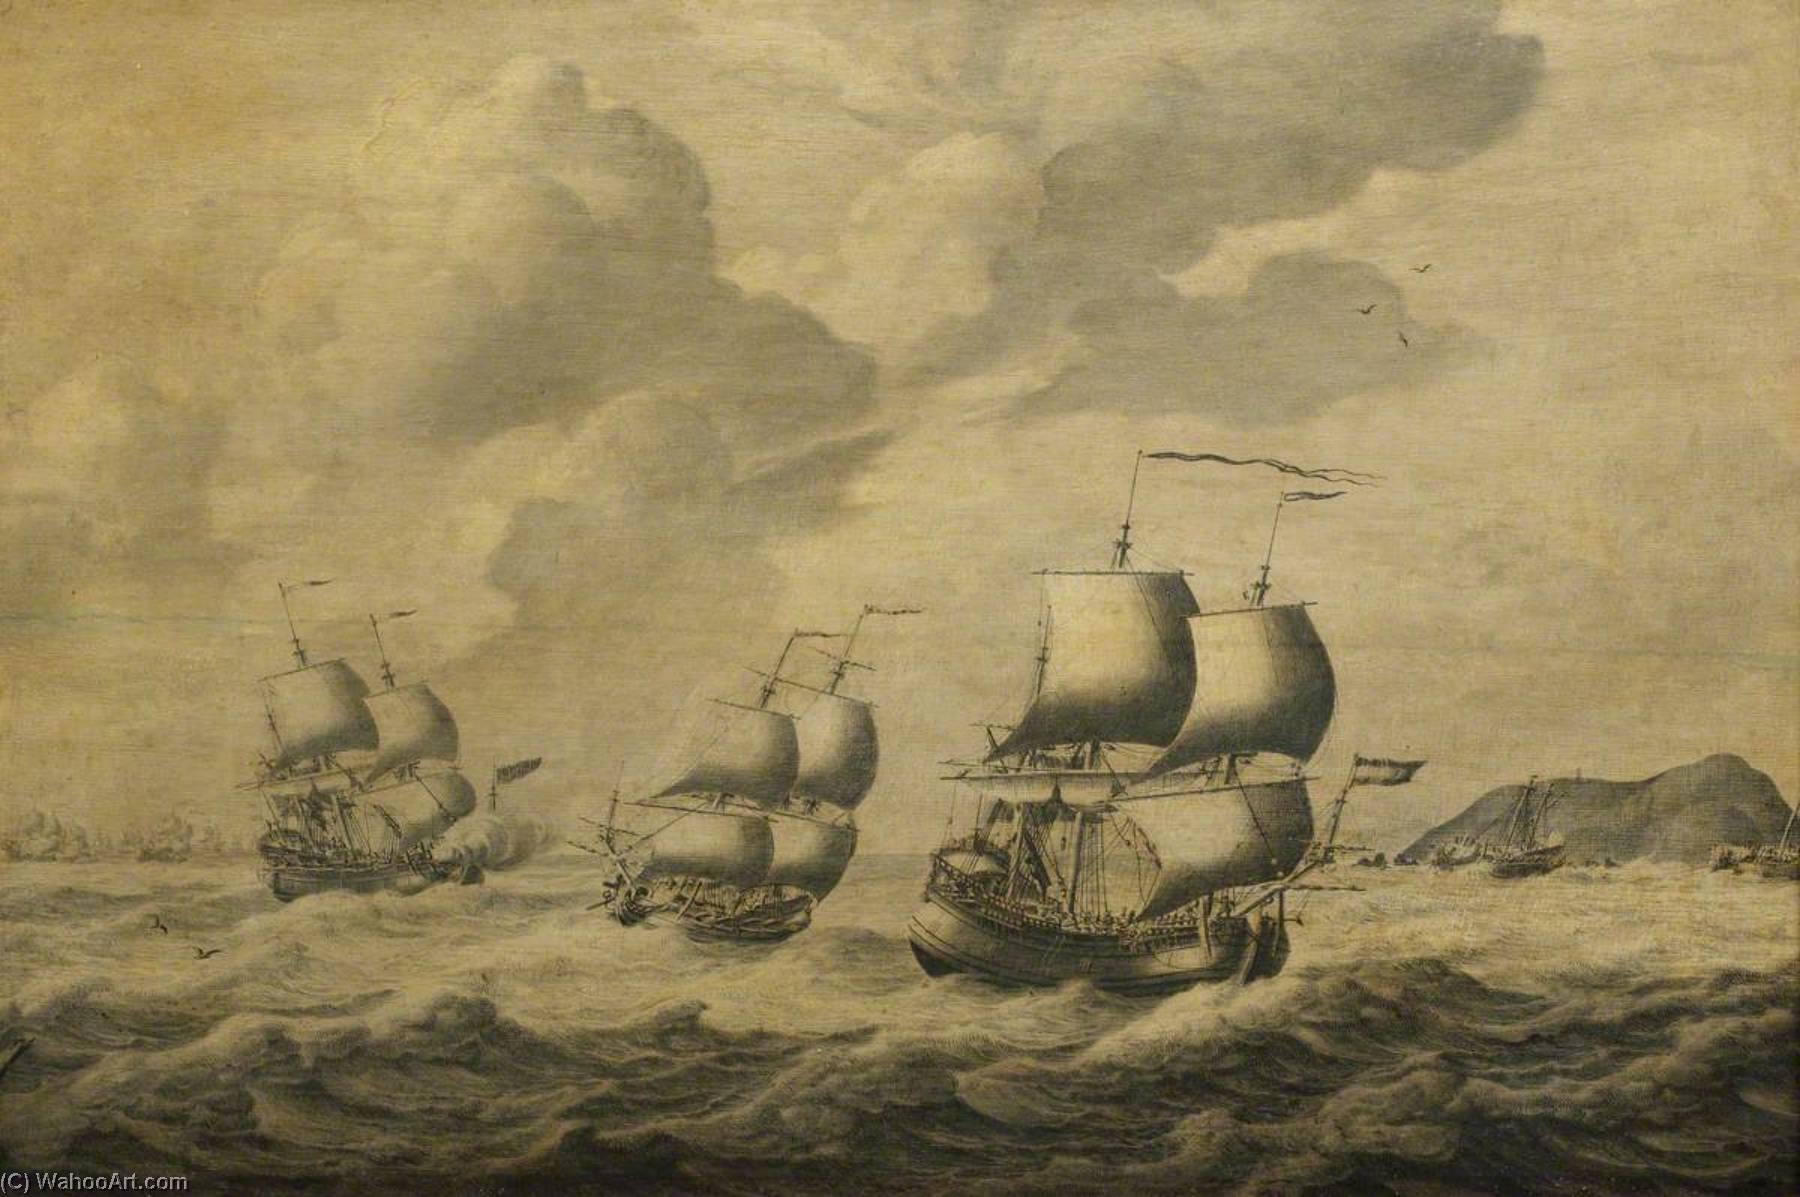 Dutch Ships Driving before a Gale by Adriaen Van Salm | Art Reproduction | WahooArt.com